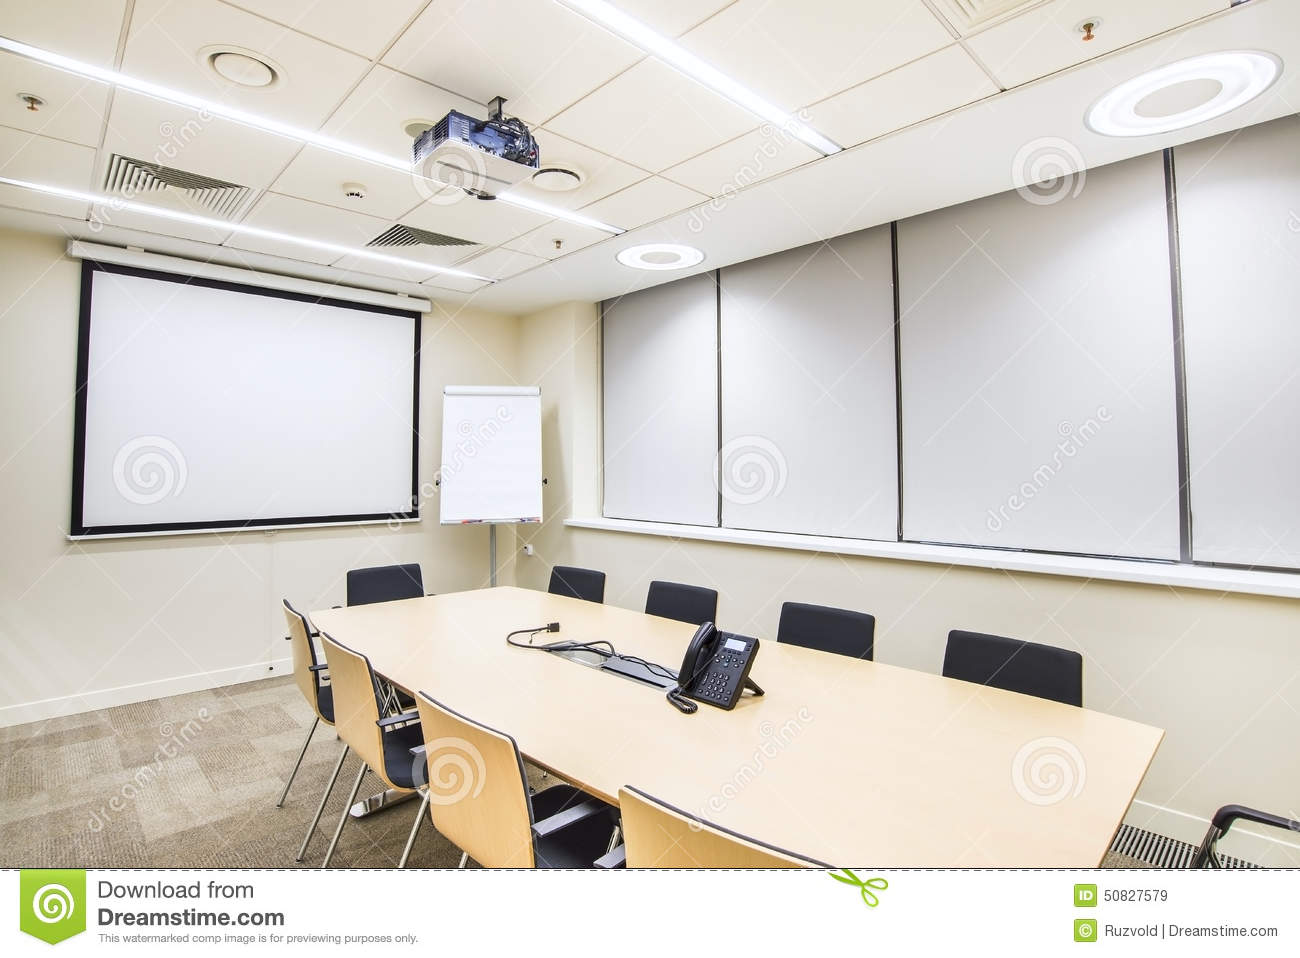 Modern Classroom Projector ~ Small meeting or training room with tv projector stock